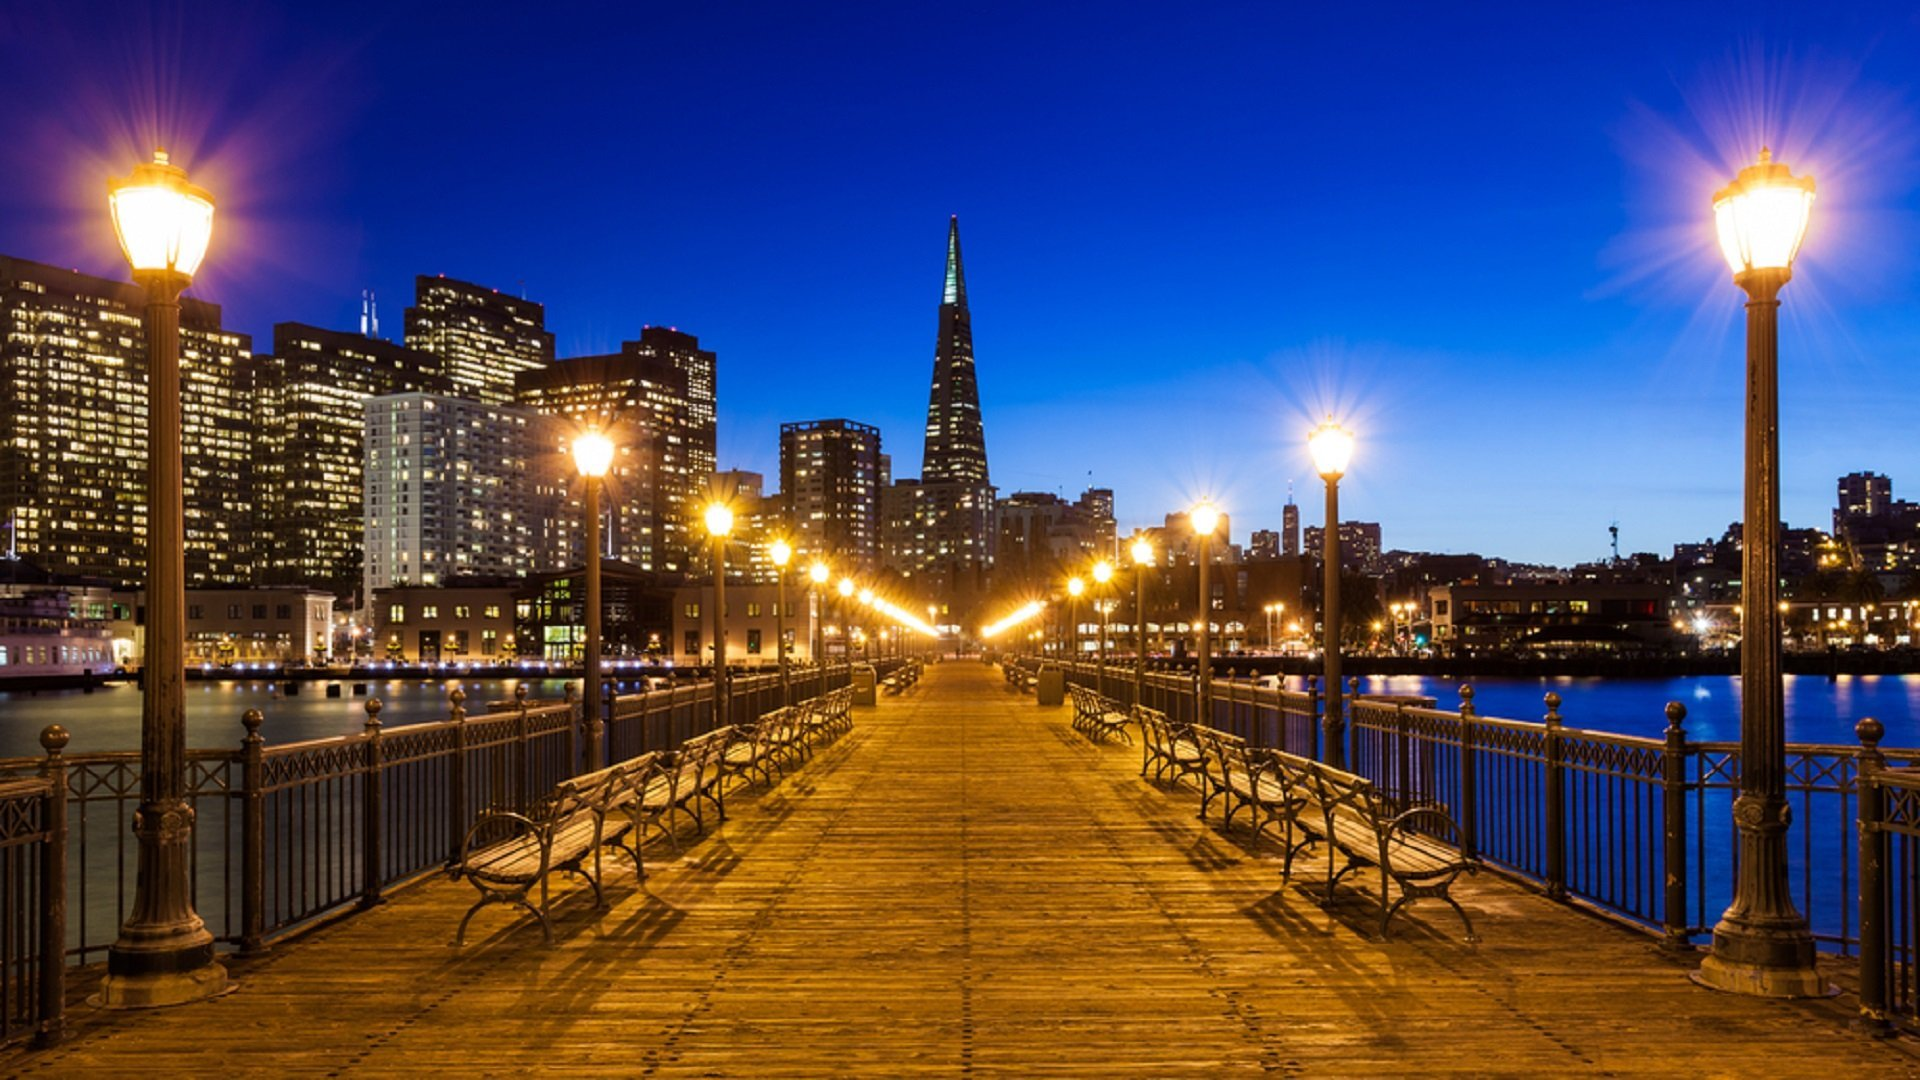 Vacation Travel Guide To San Francisco Best Places To Visit In San Francisco Zen Tripstar travel trip usa north america